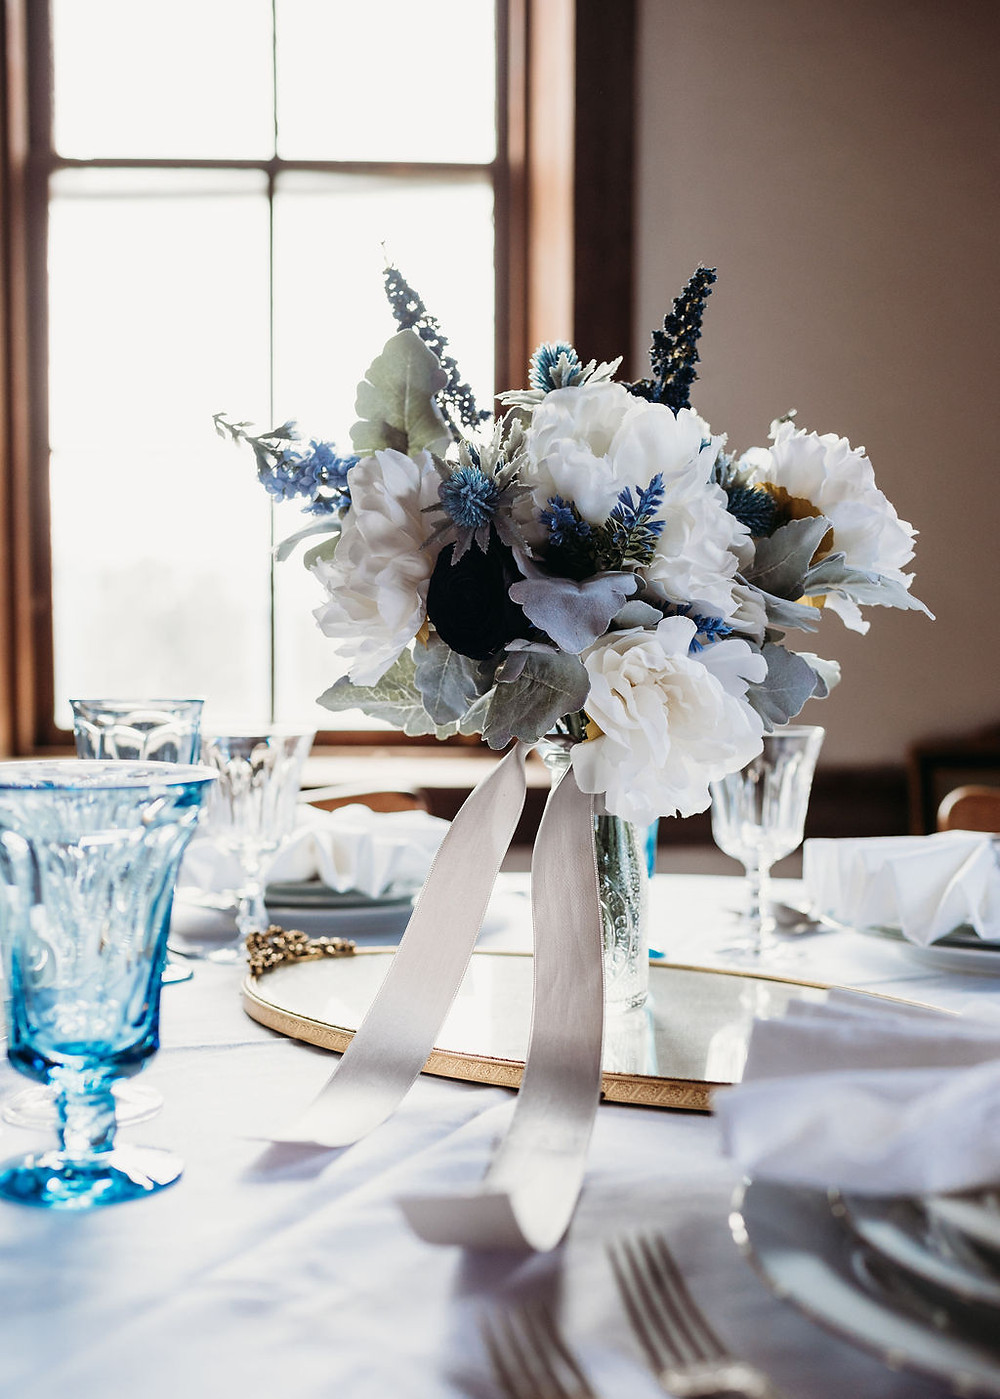 flowers as table centerpiece at wedding